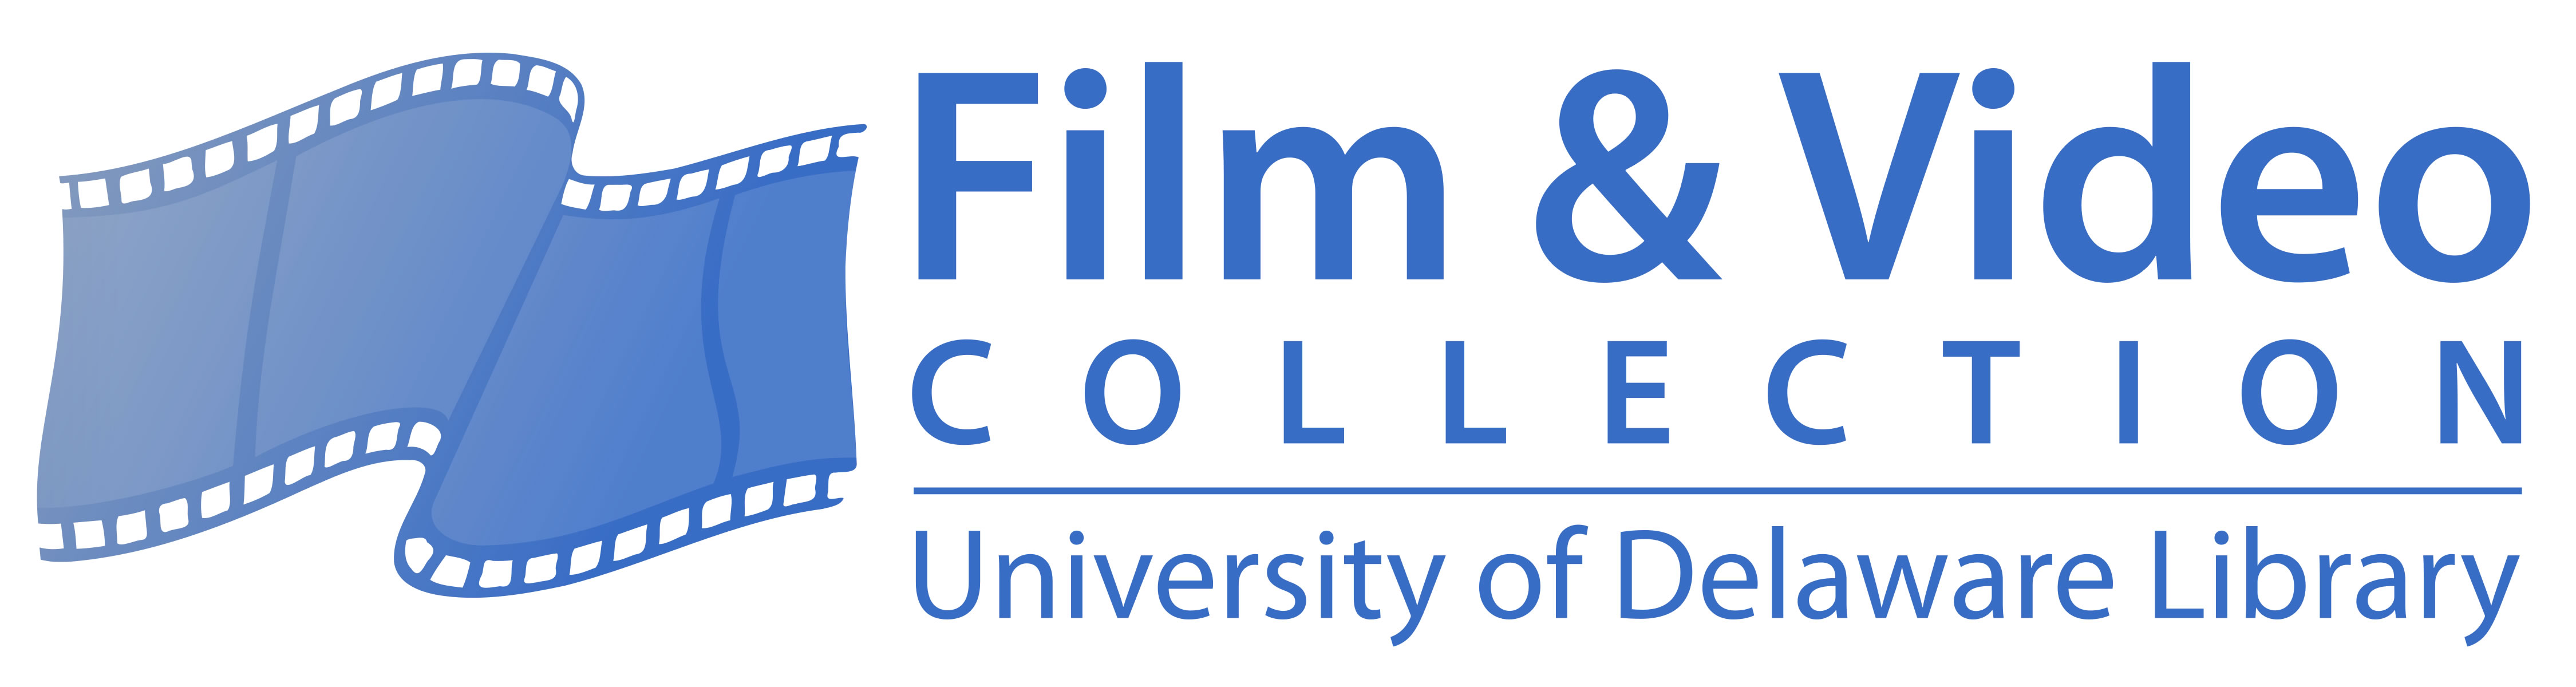 Orientation to Film & Video Collection